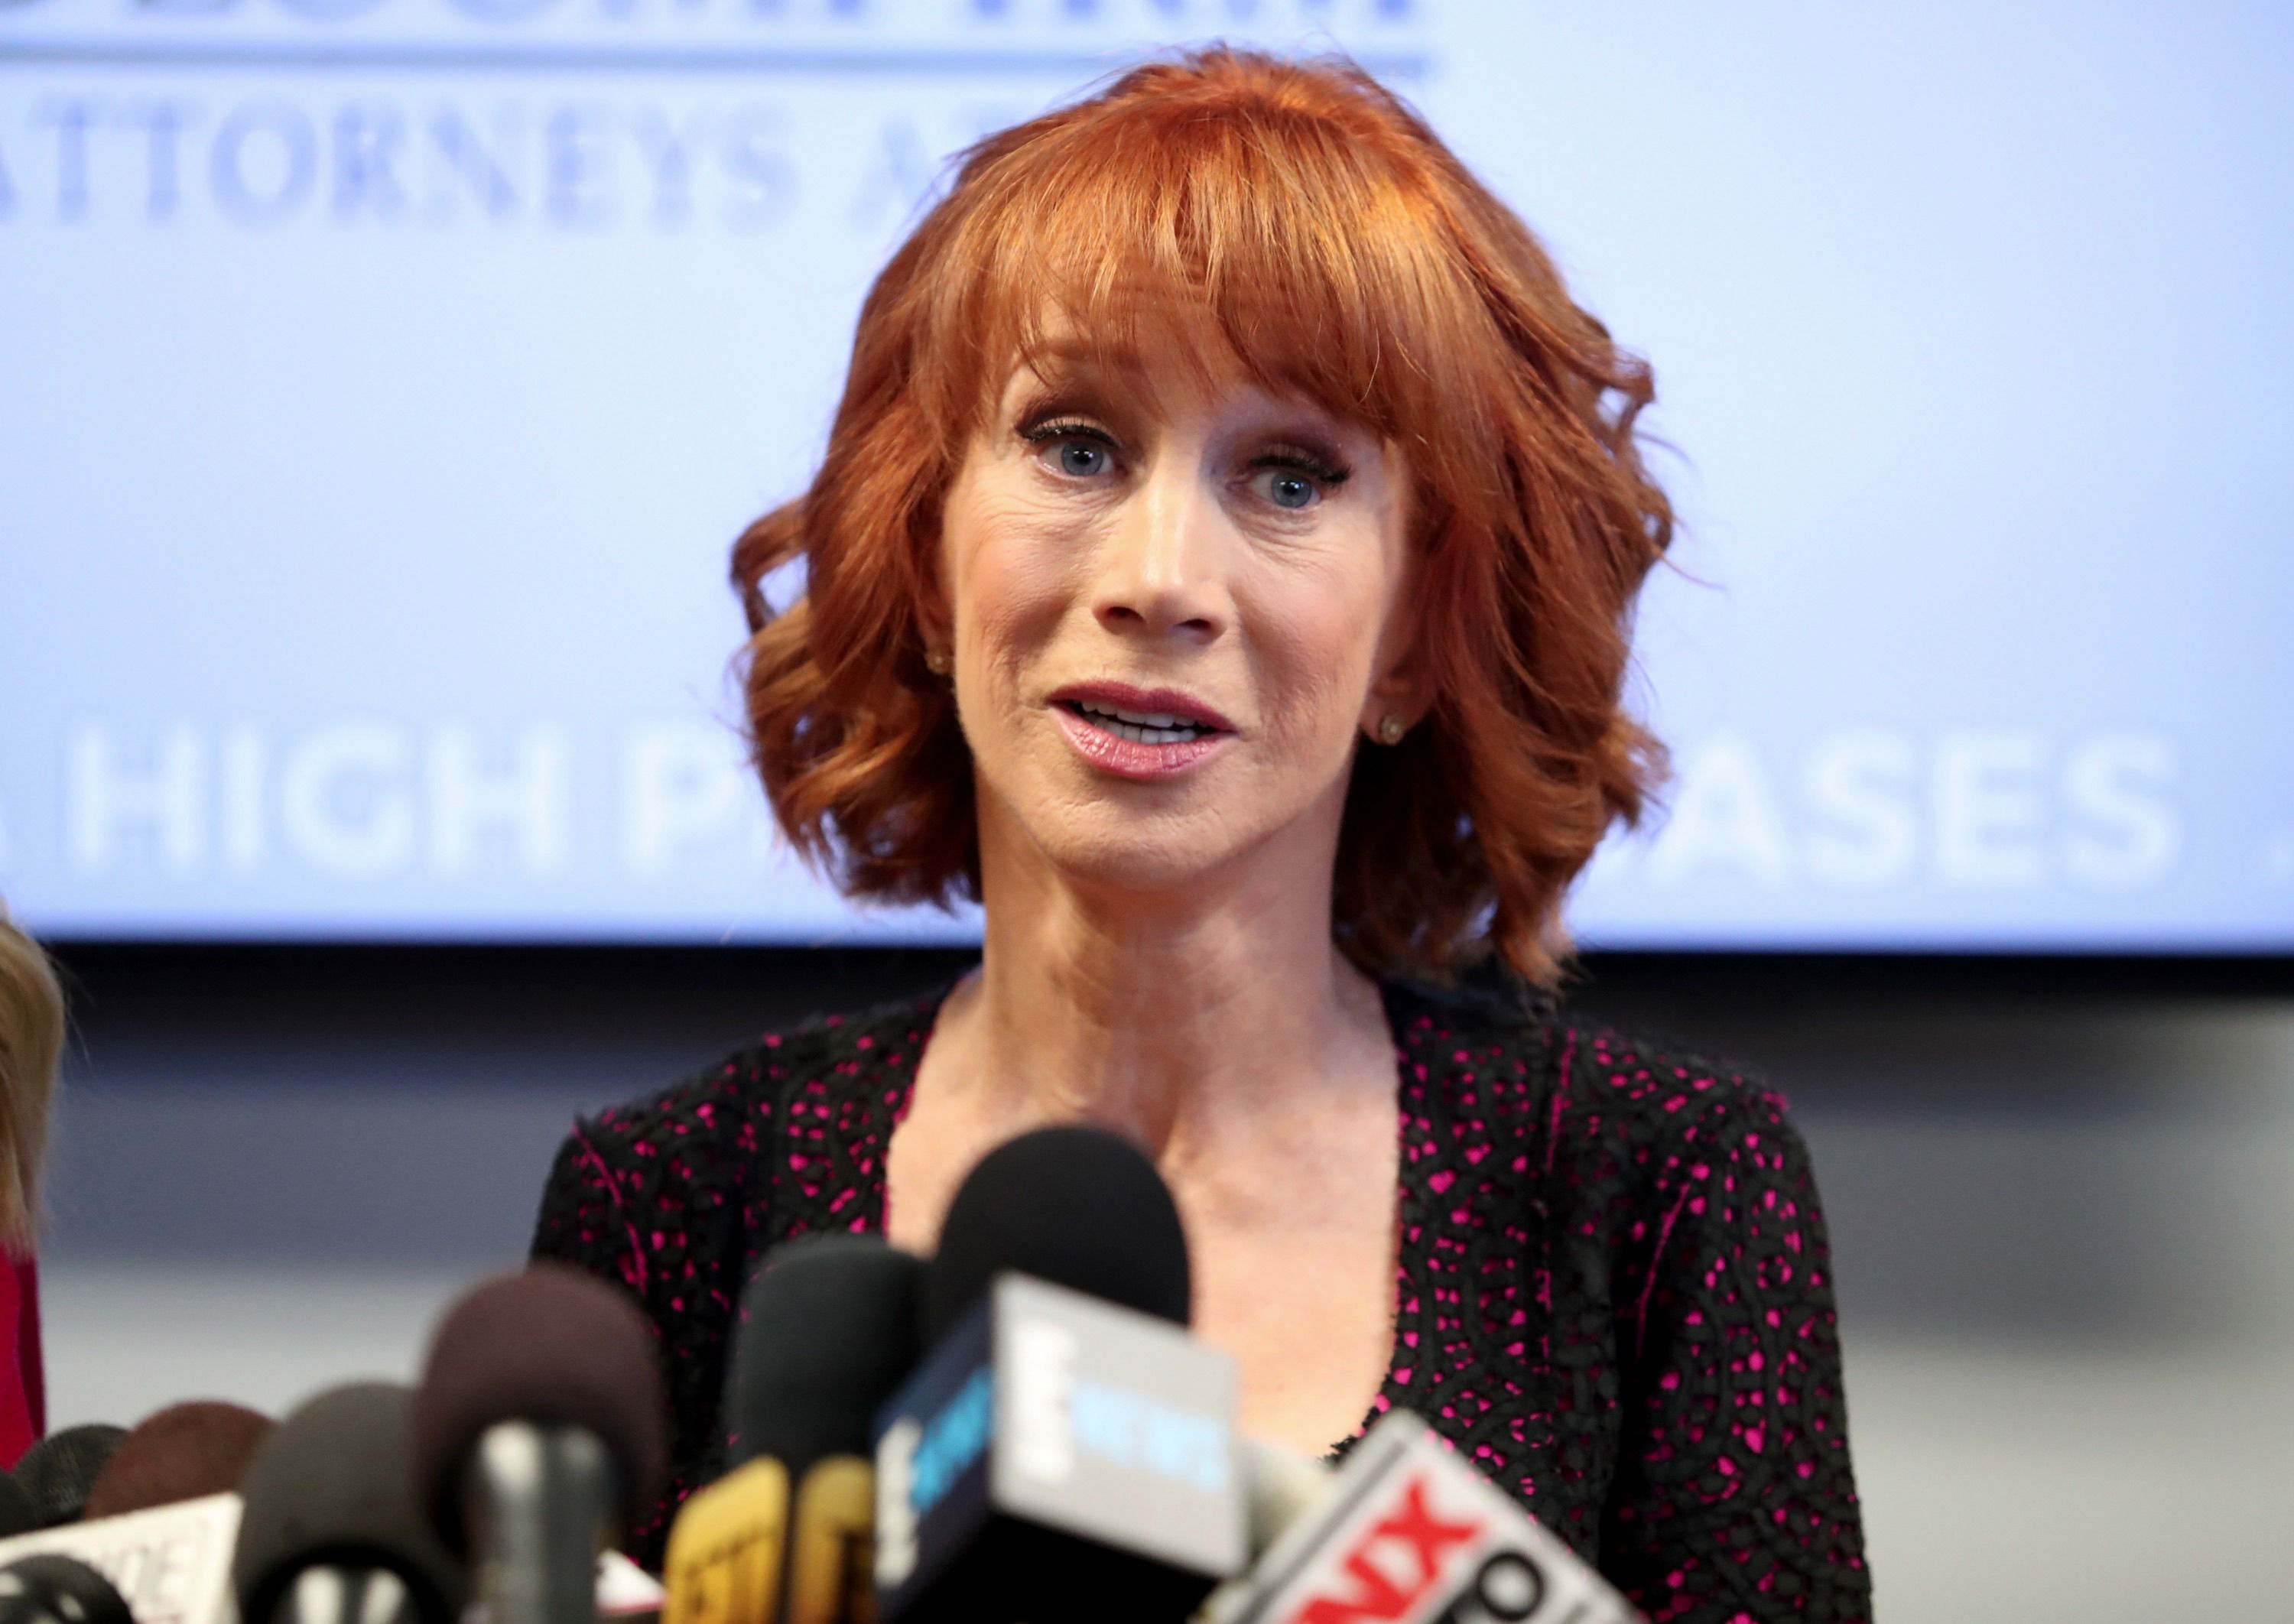 Kathy Griffin's Recent Video Rant Confirms She's Still Feuding With Andy Cohen